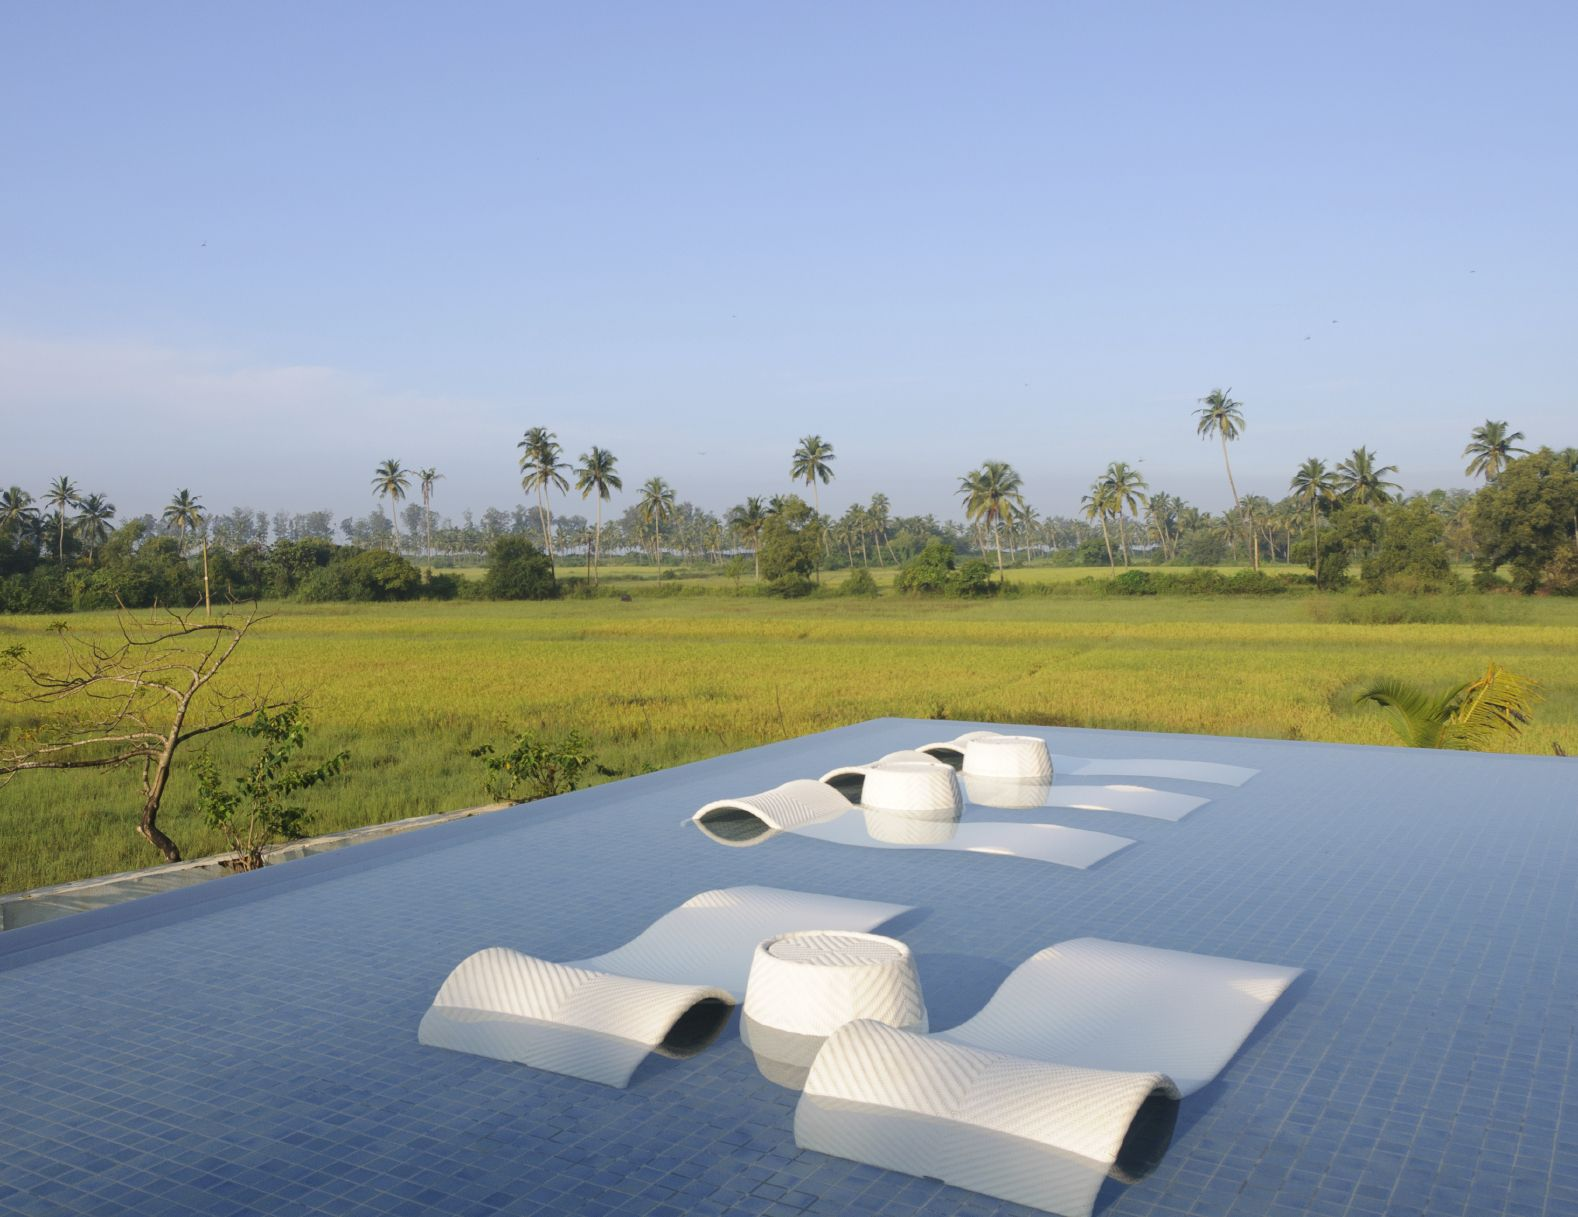 Sunbathing Chairs 65 Incredible Infinity Pool Design Ideas Stunning Photos For